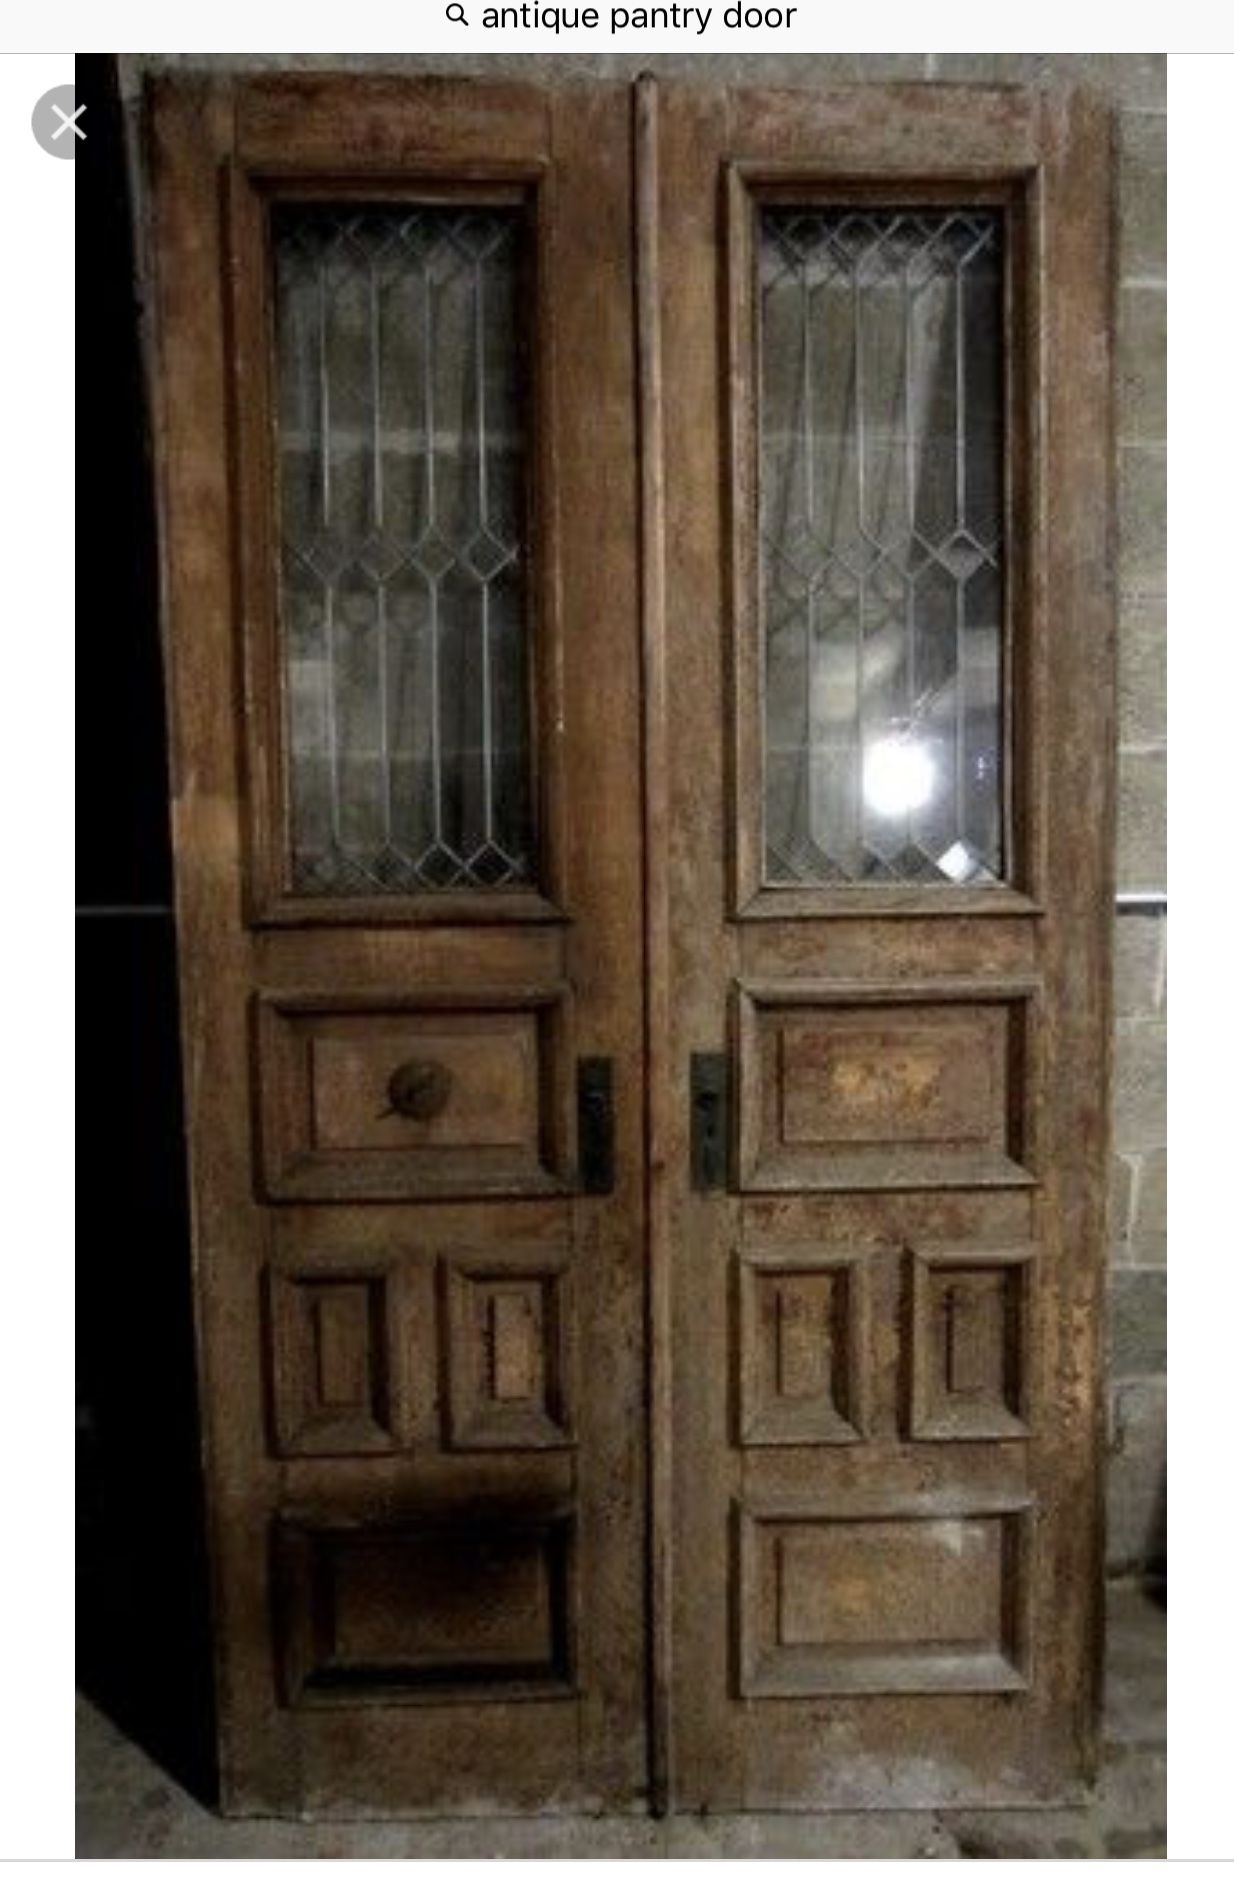 Antique Pantry Doors - Antique Pantry Doors Ideas For The House In 2018 Pinterest